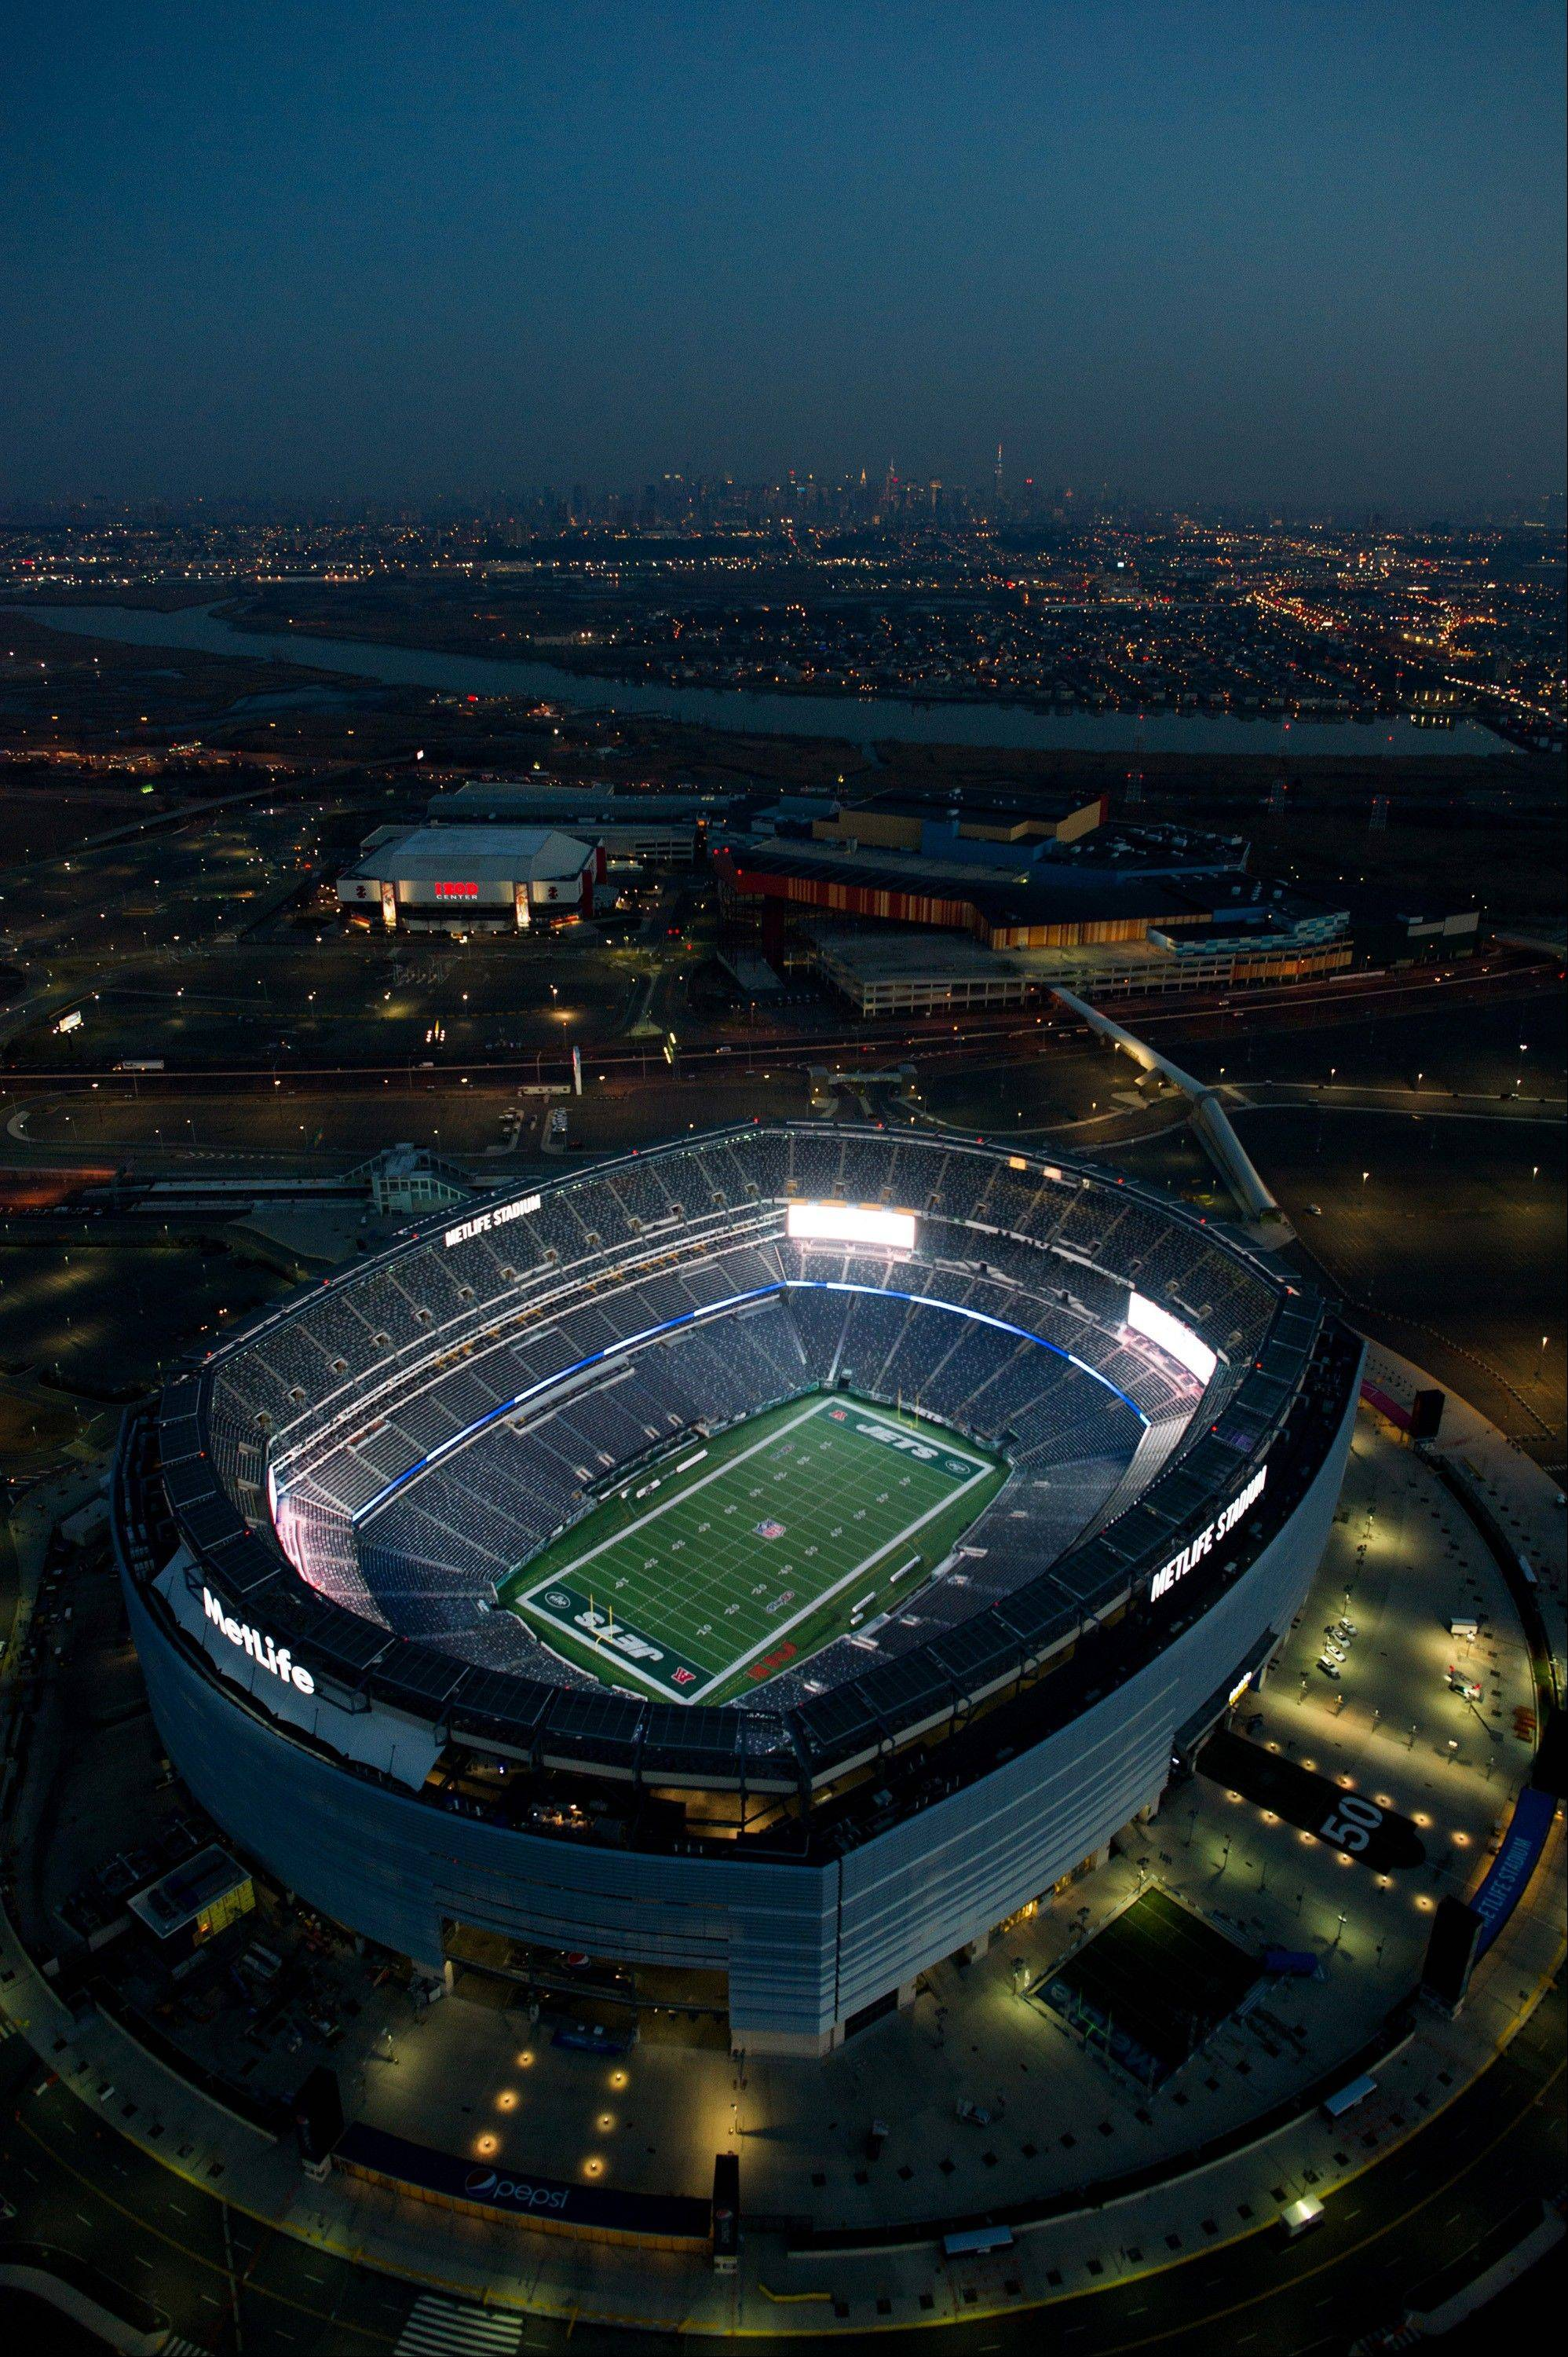 MetLife Stadium stands in this aerial photograph taken in East Rutherford, New Jersey, U.S., on Tuesday, Dec. 3, 2013. U.S. stocks declined a fifth day, sending the Standard & Poor���s 500 Index to a two-week low, after improving economic data boosted bets the Federal Reserve will curb its monthly bond purchases sooner than estimated.